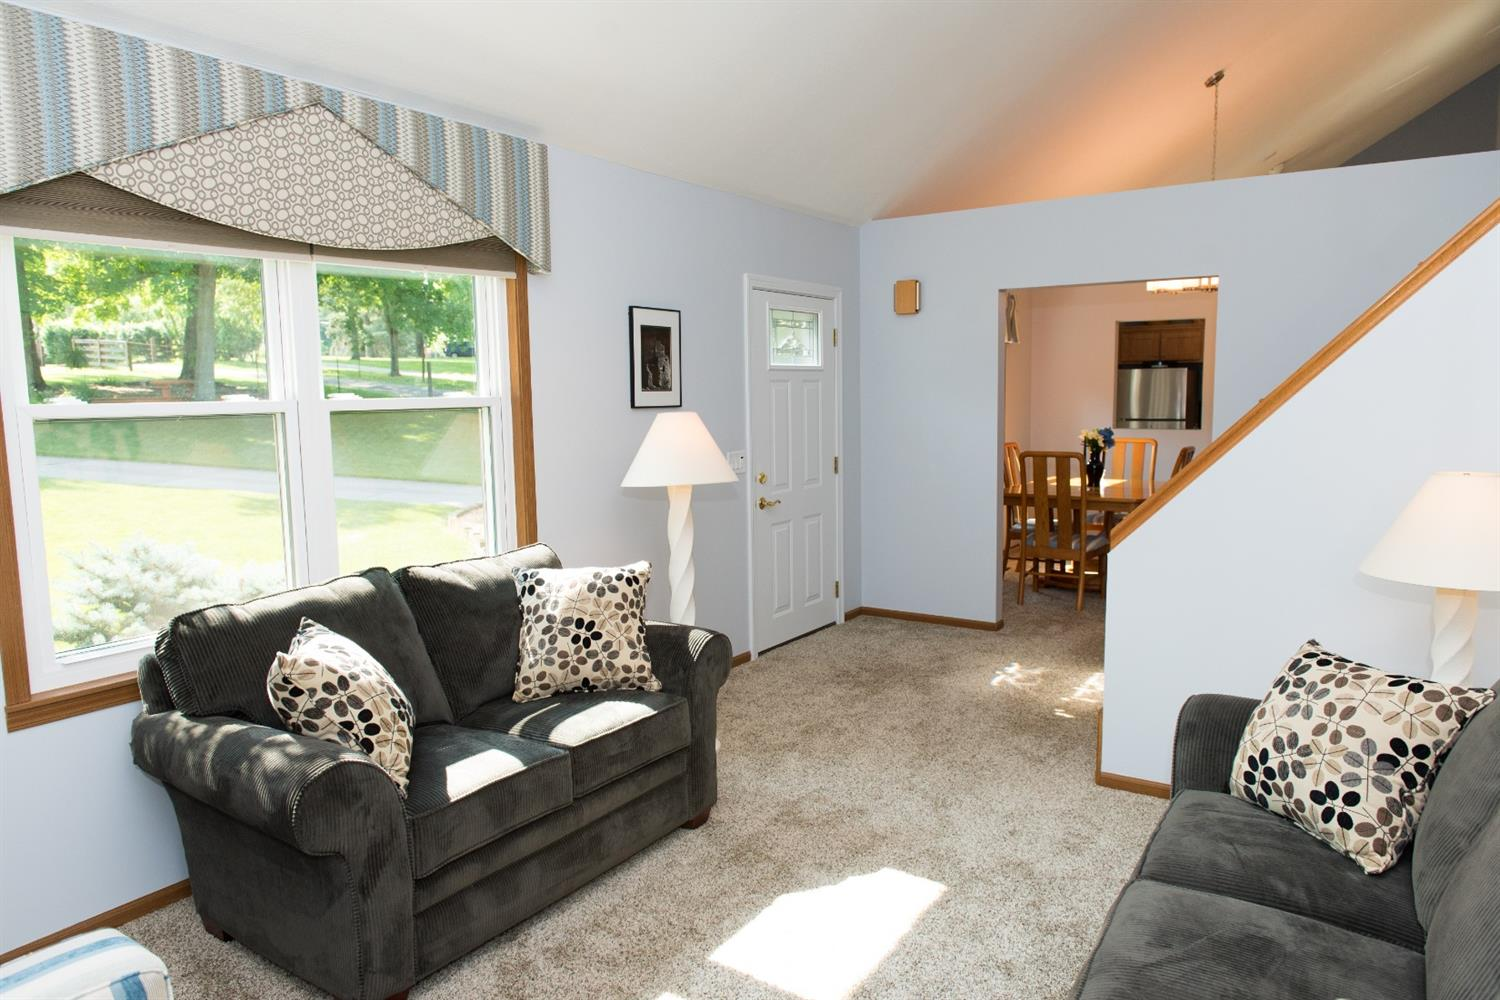 Photo 2 for 11881 Stone Mill Rd Colerain Twp.West, OH 45251